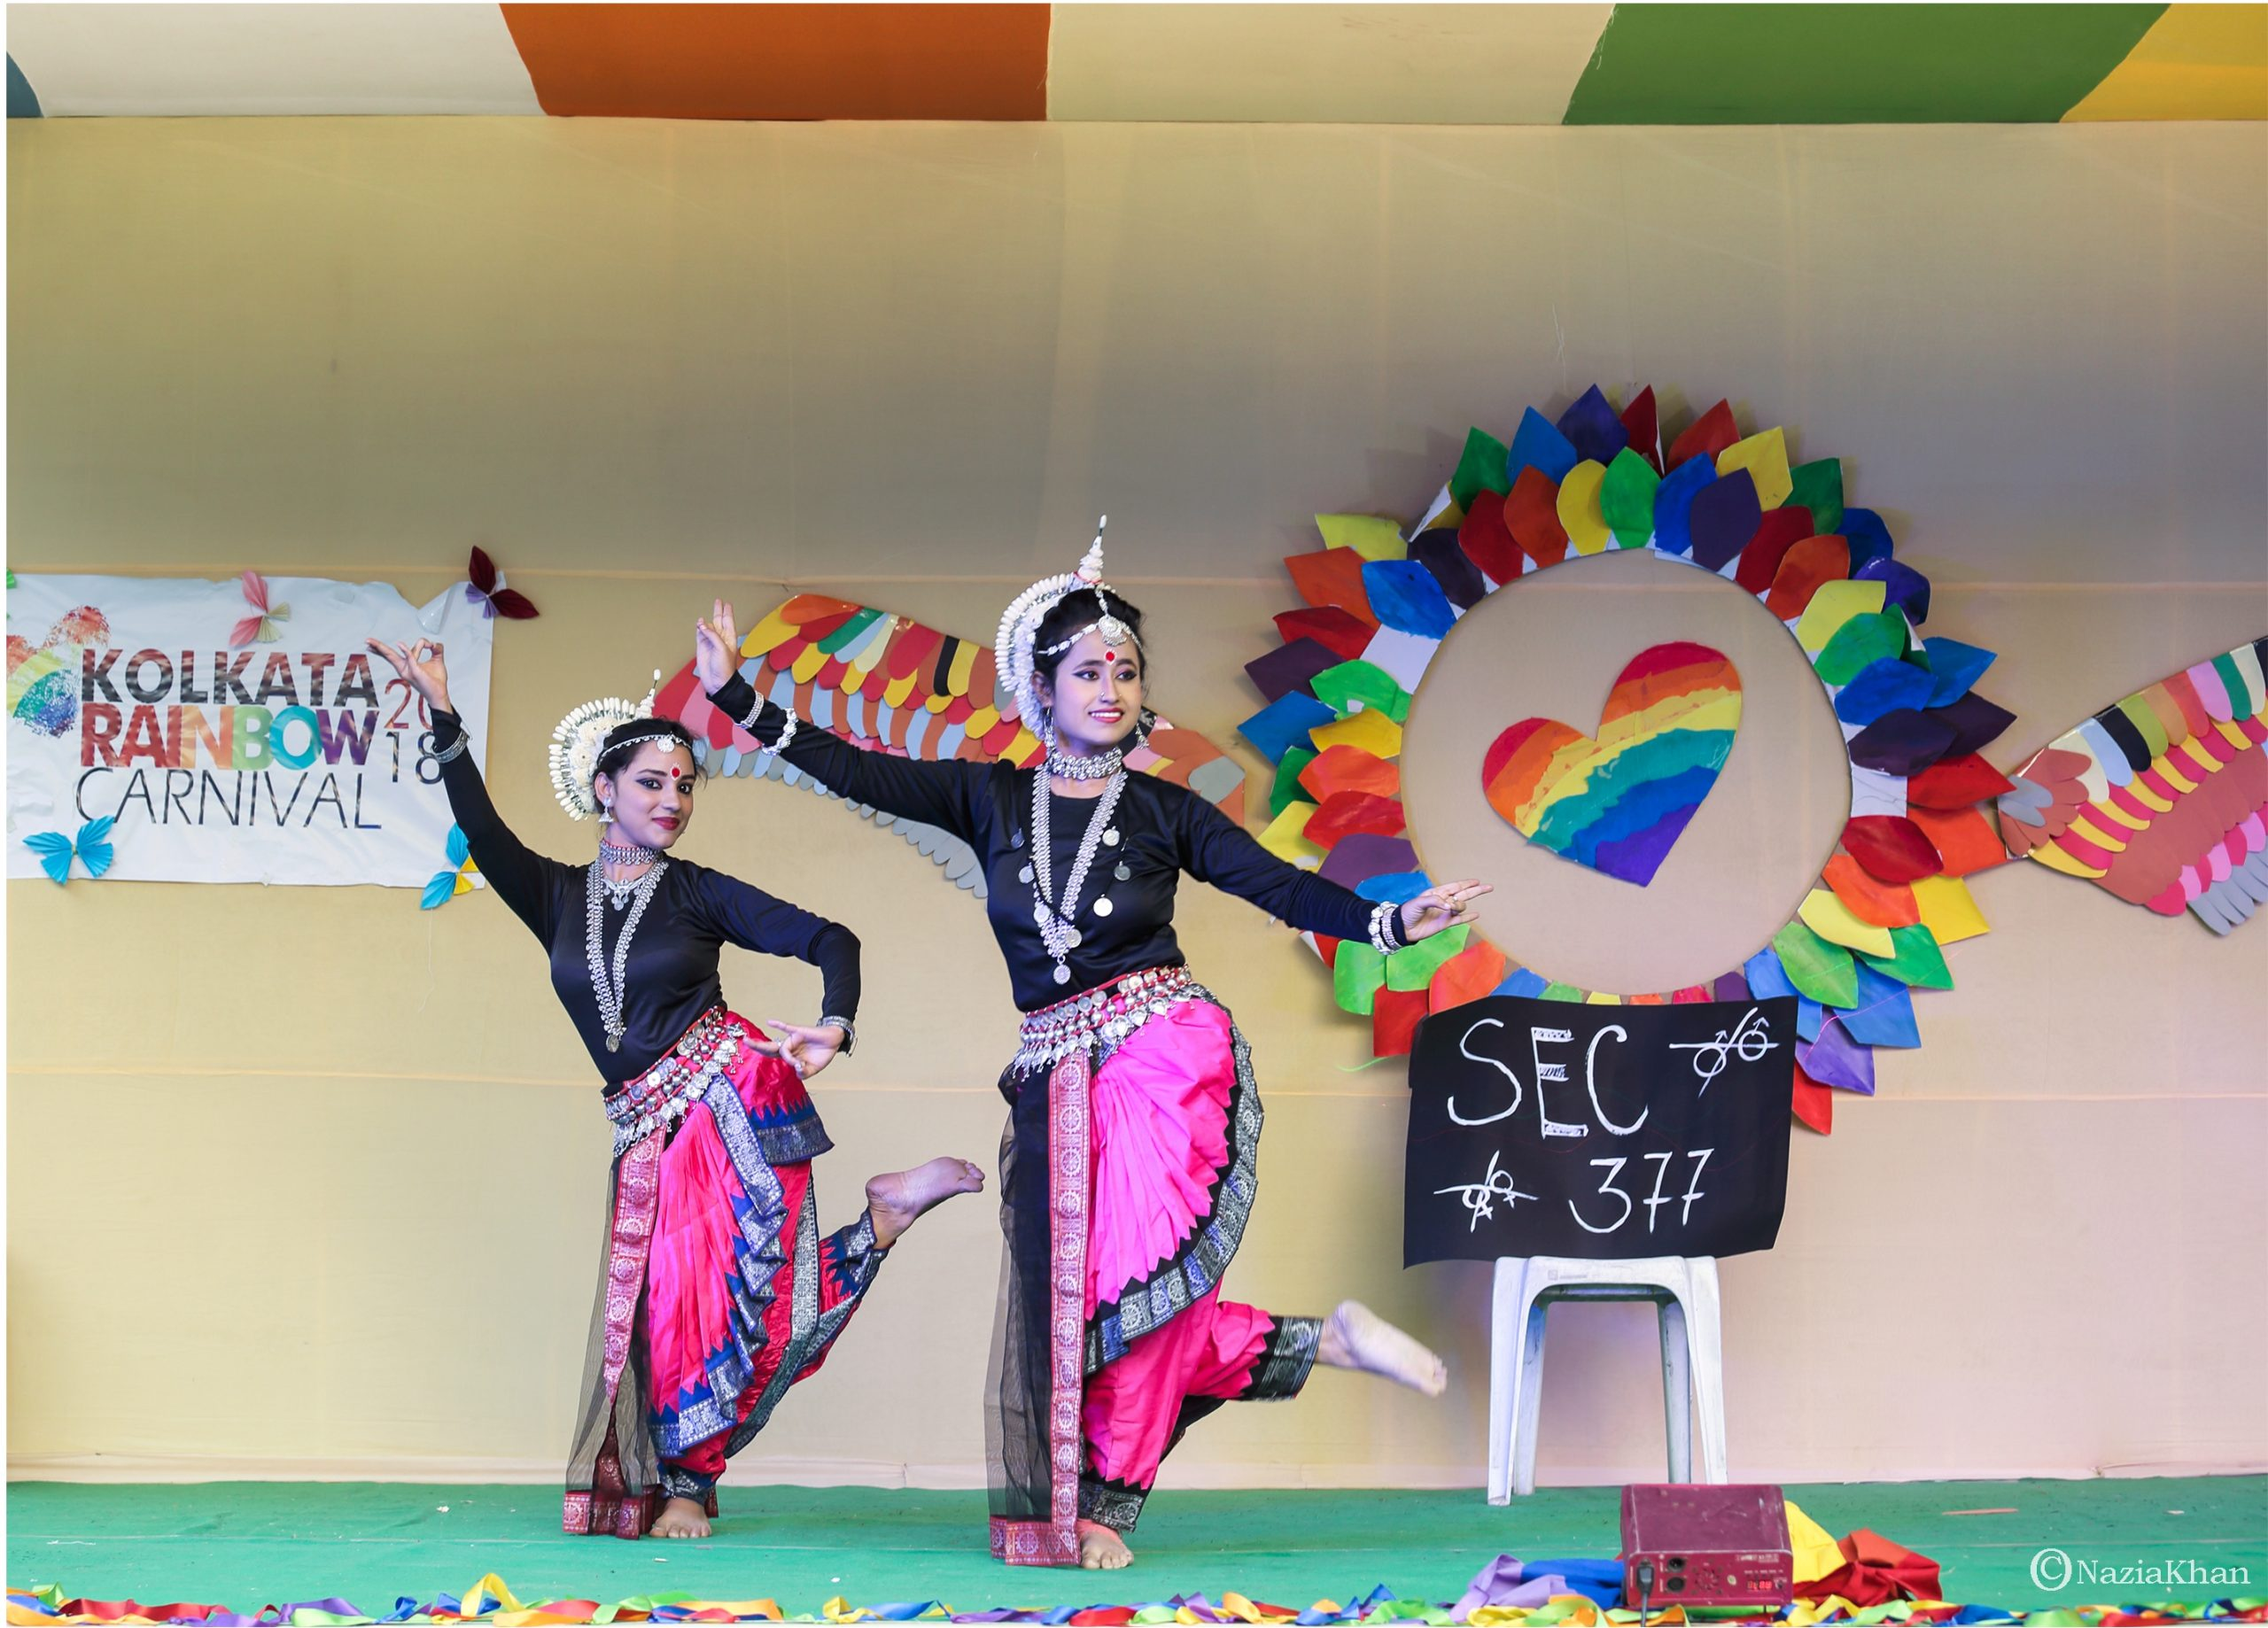 "This photograph shows a classical dance performance in progress on a stage at the 'Kolkata Rainbow Carnival 2018'. Two female dancers are caught on camera executing an intricate move and 'mudra'. Just next to them, to their left is a placard placed on a chair – the placard says ""Sec 377"", with the symbols of two same-sex couples (a male and female couple each) crossed out. This implies that the existence of a law like Section 377 of the Indian Penal Code stigmatizes and criminalizes same-sex sexual and / or romantic relationships. Behind the dancers, to their right, pasted on the back wall of the stage is a colourful poster with butterfly cut-outs pinned on it – the poster says ""Kolkata Rainbow Carnival 2018"". Large rainbow themed decorations cover the rest of the back wall. The carnival was organized by the West Bengal Forum for Gender and Sexual Minority Rights on February 18, 2018 at Triangular Park in South Kolkata. Photo credit: Nazia Khan"